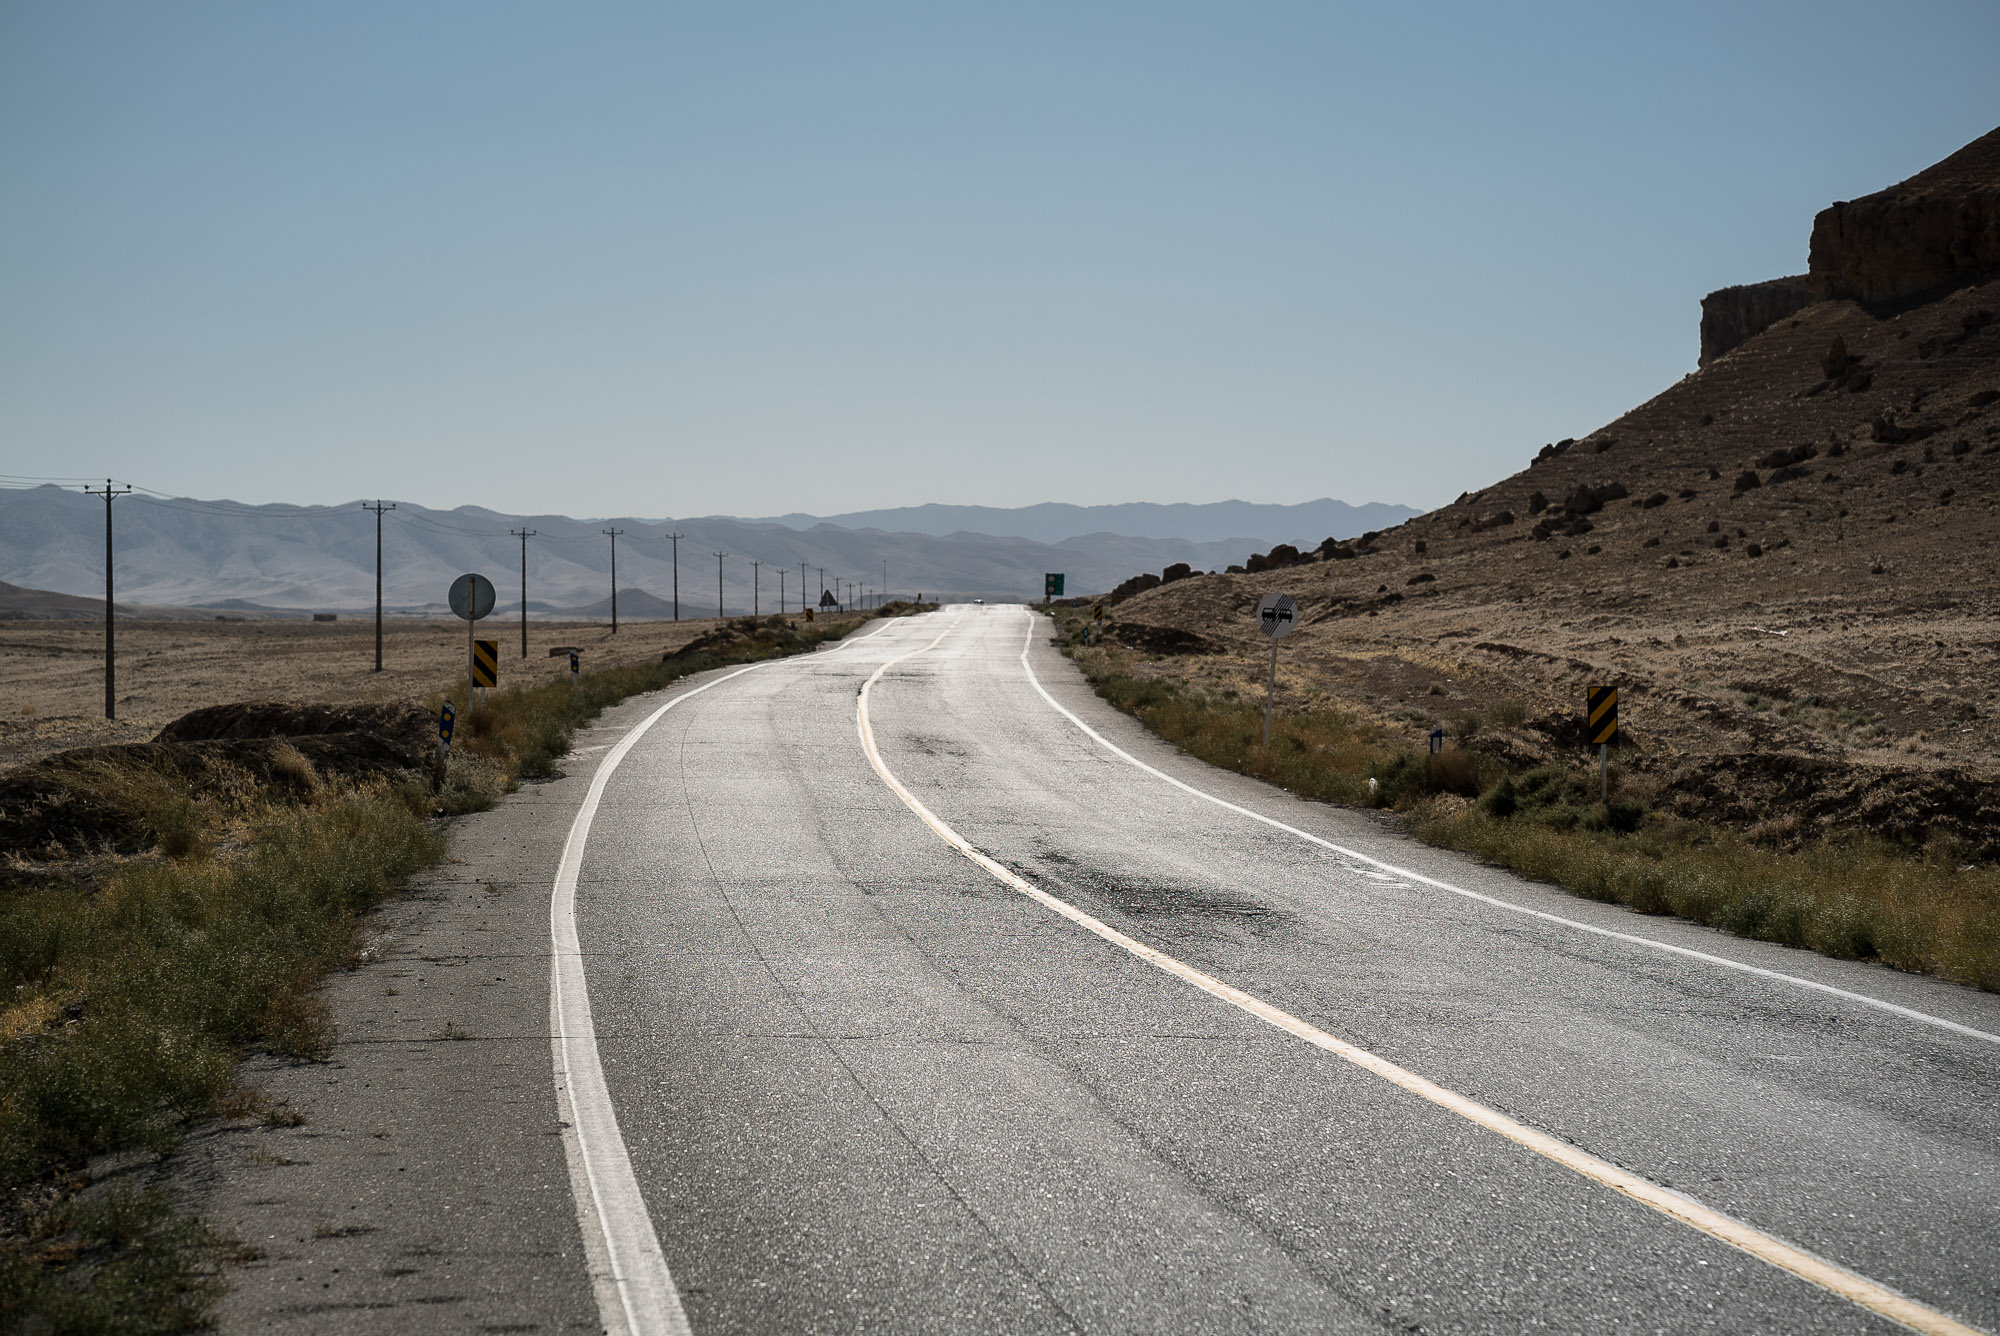 yet more road